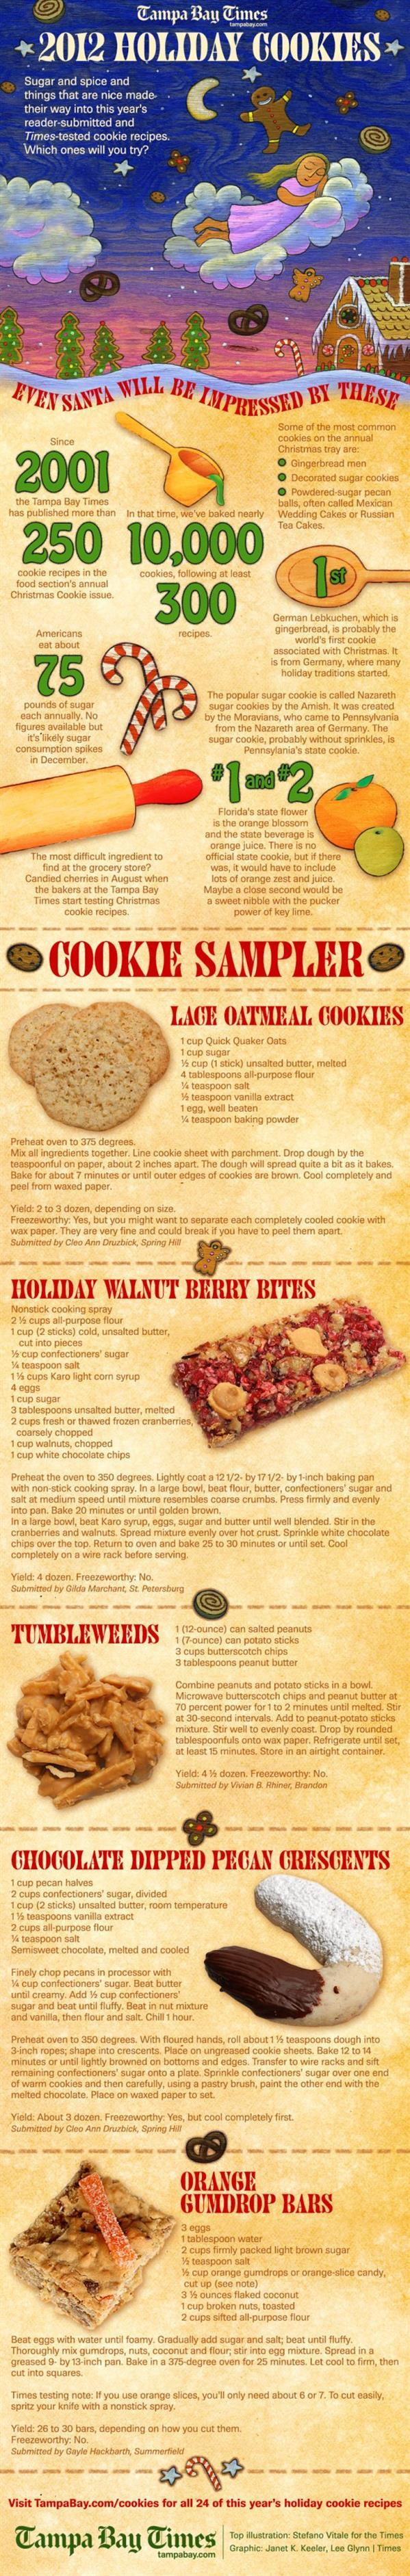 Christmas Holiday Cookies Infographic